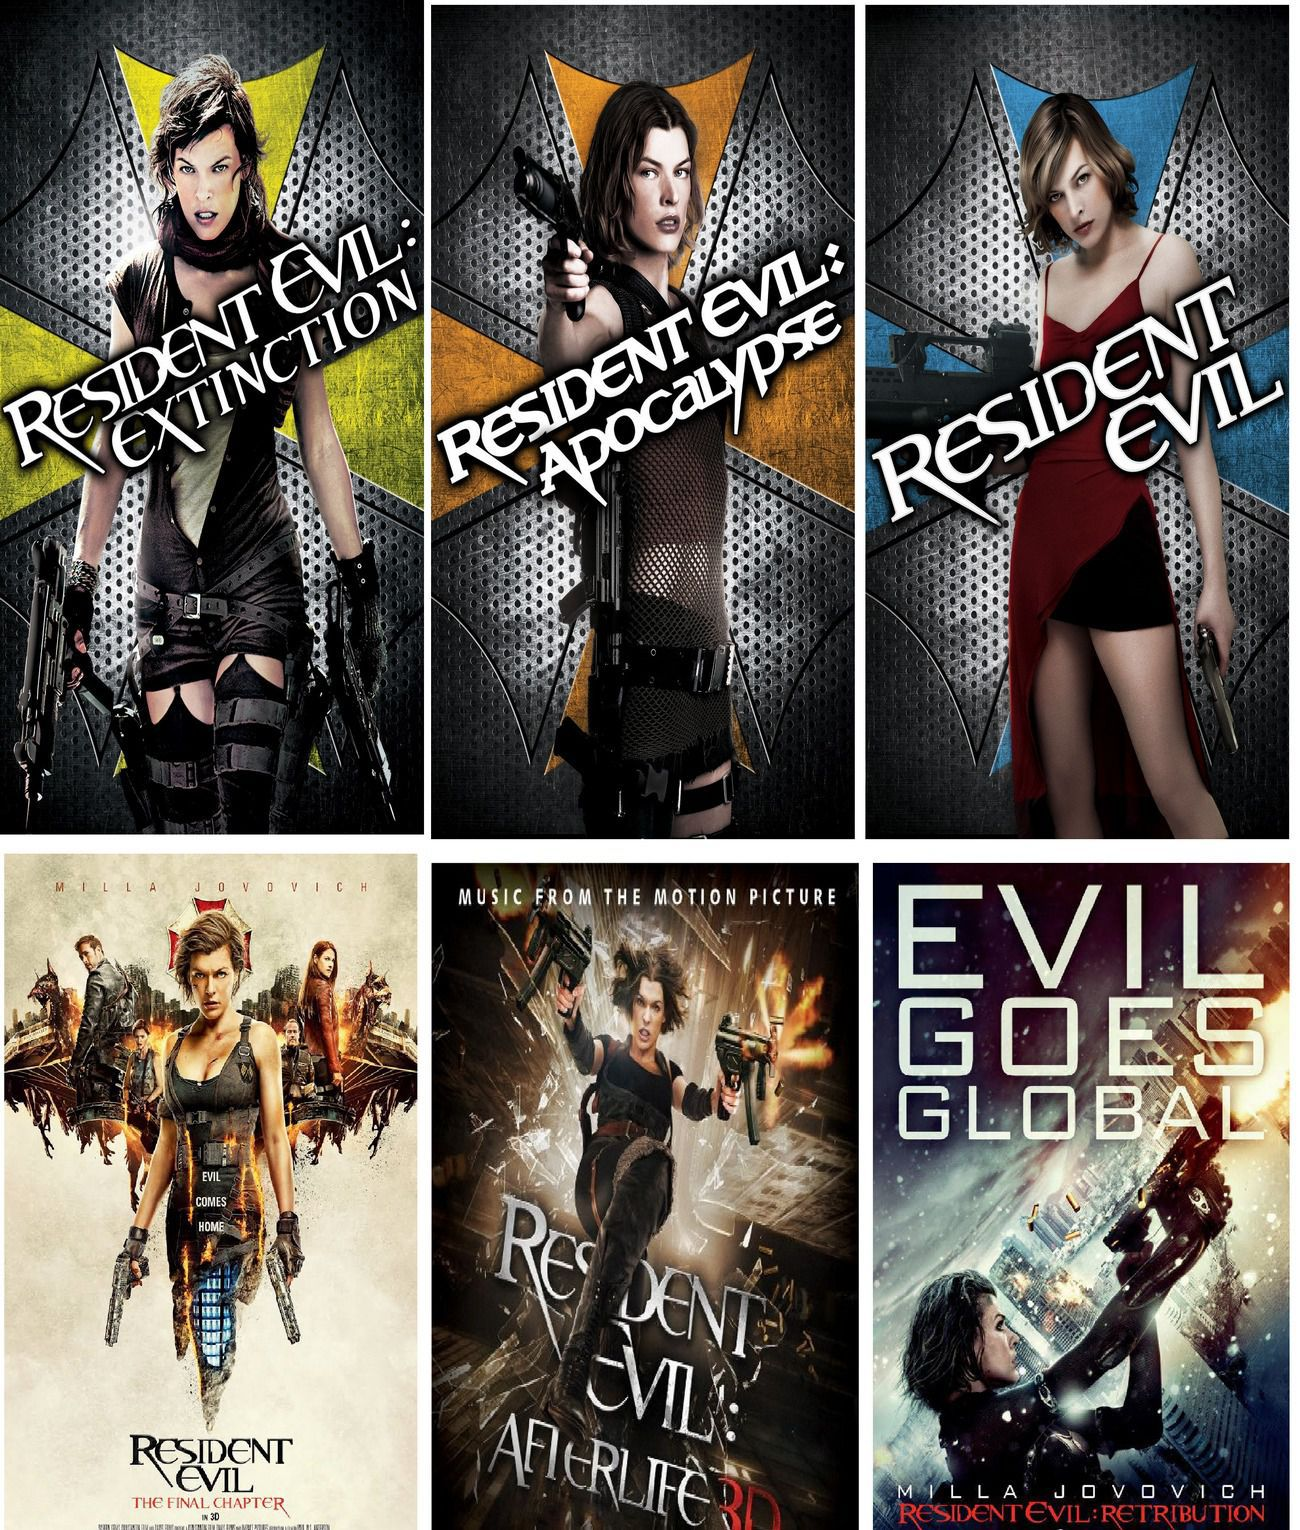 RESIDENT EVIL MOVIES (2002 - 2017) COLLECTION TAMIL DUBBED HD